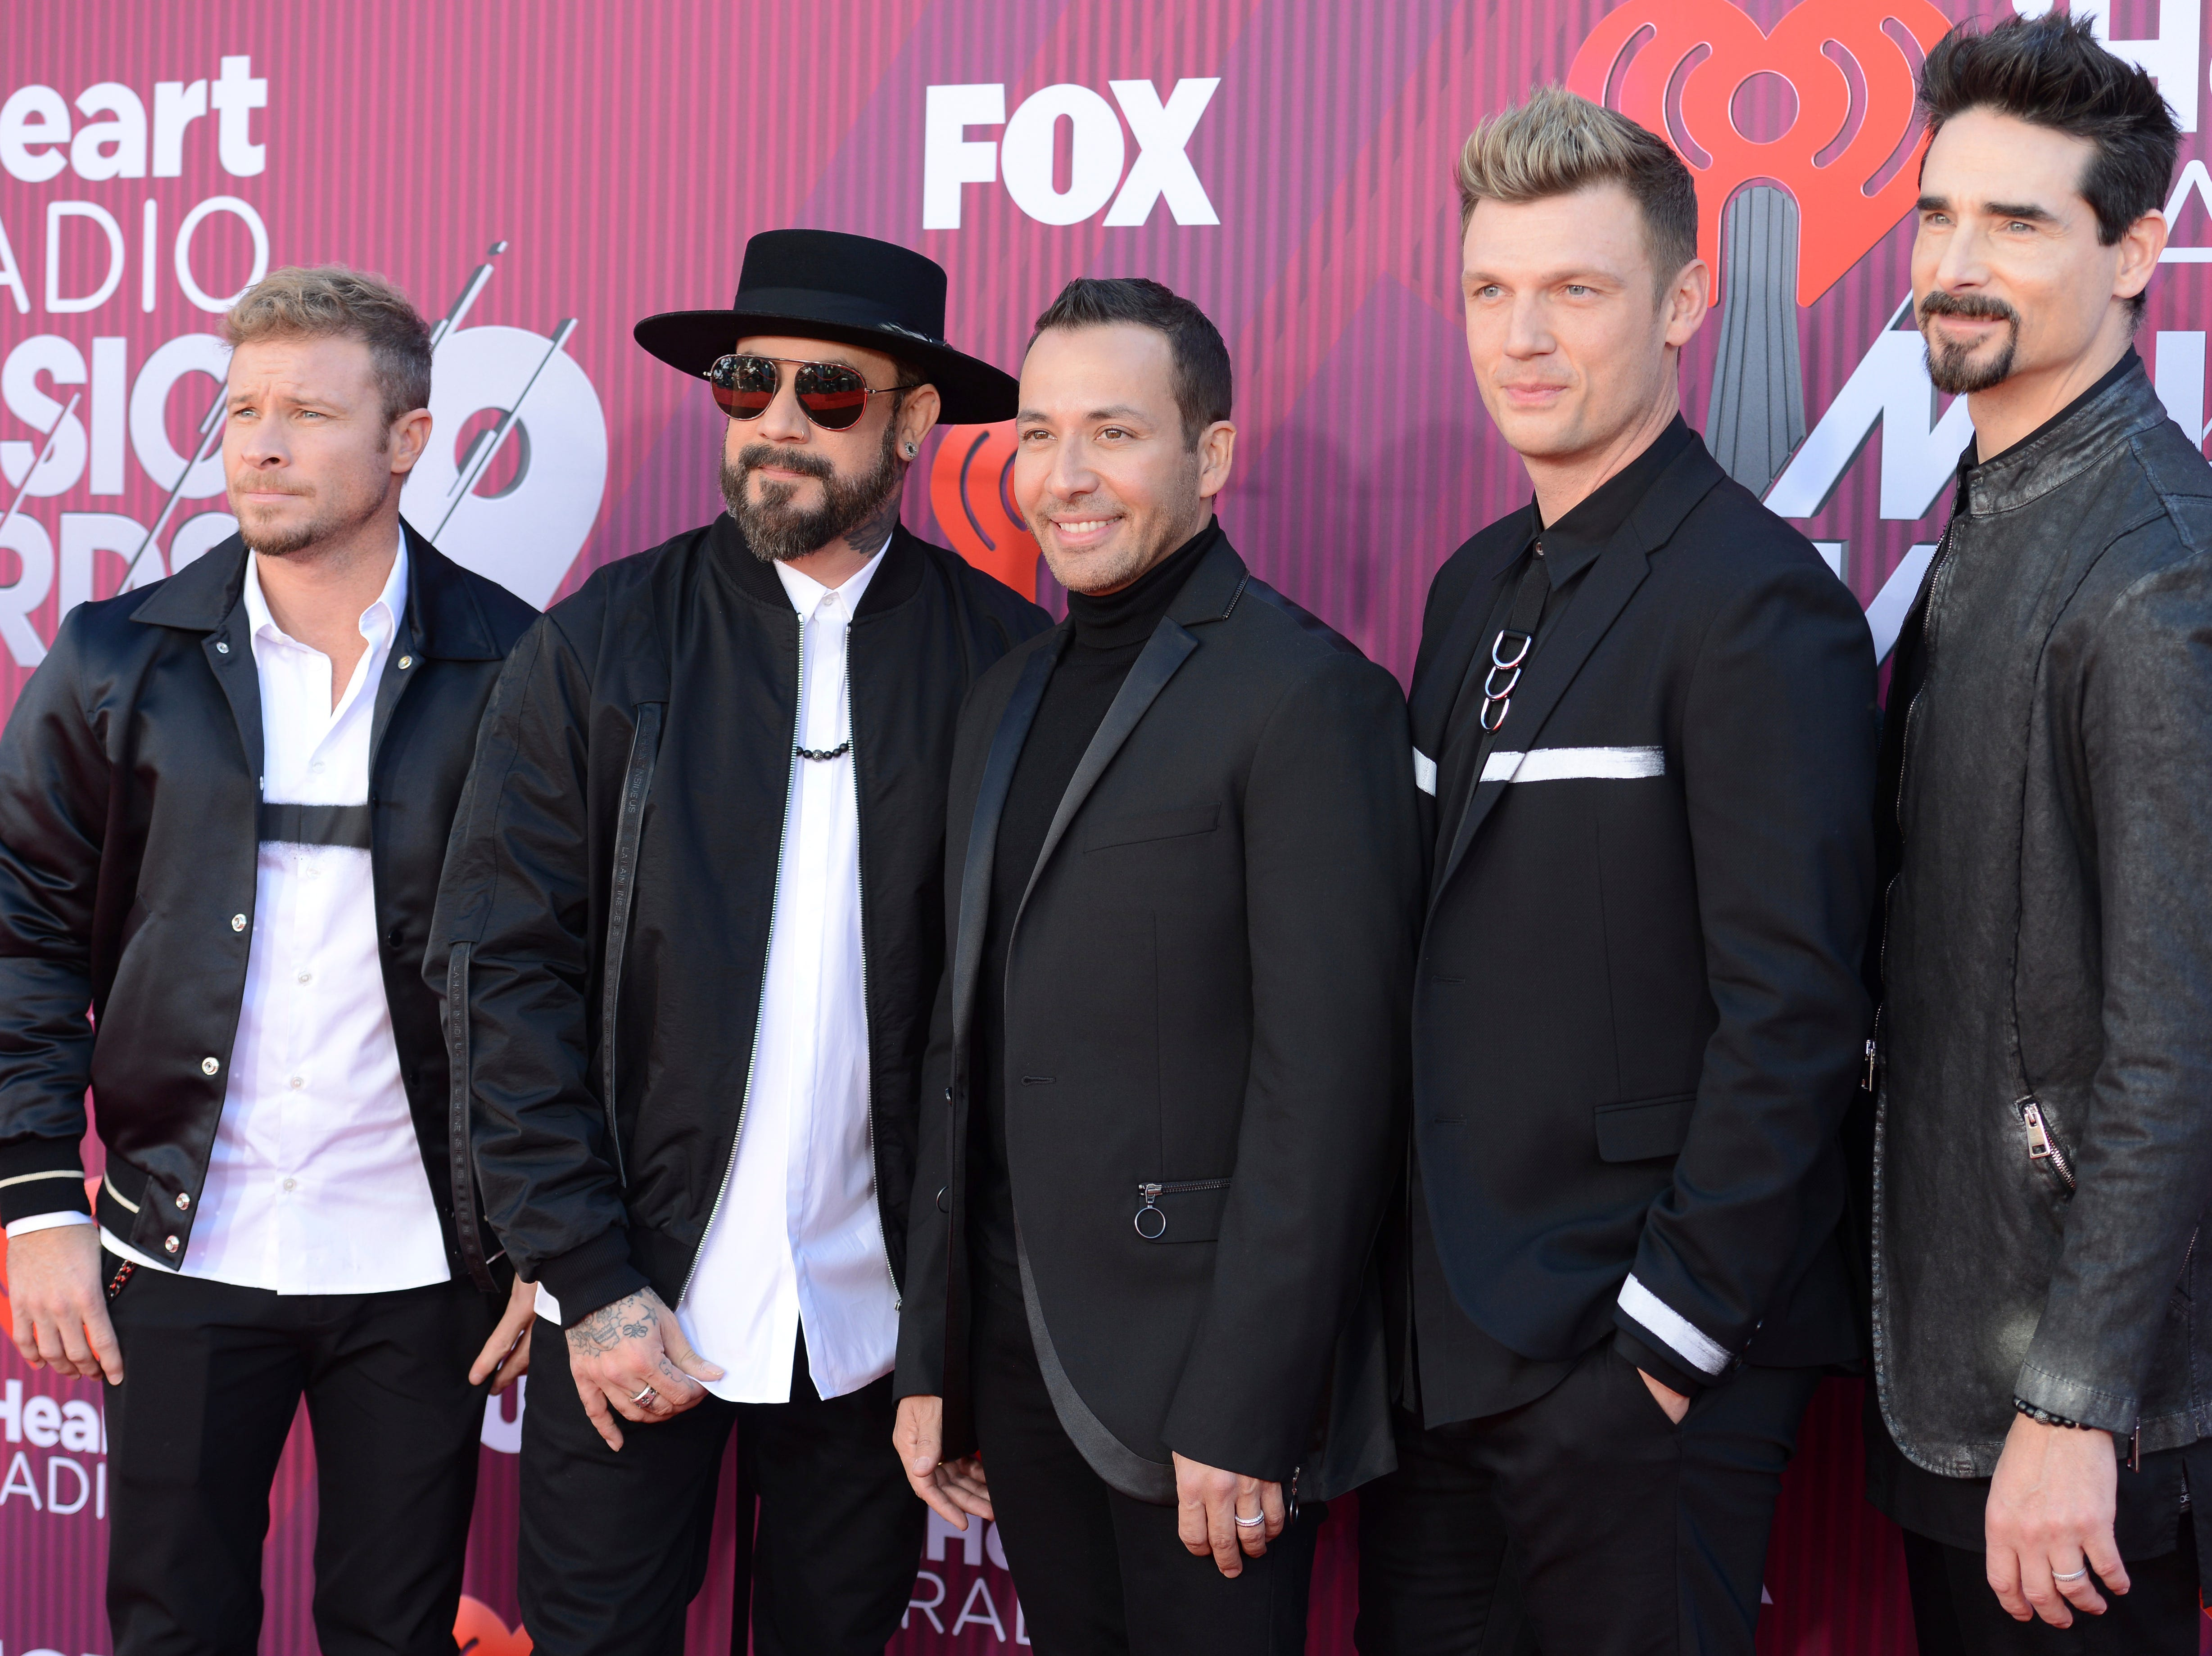 Brian Littrell, from left, AJ McLean, Howie Dorough, Nick Carter and Kevin Richardson of the Backstreet Boys, arrive at the iHeartRadio Music Awards.